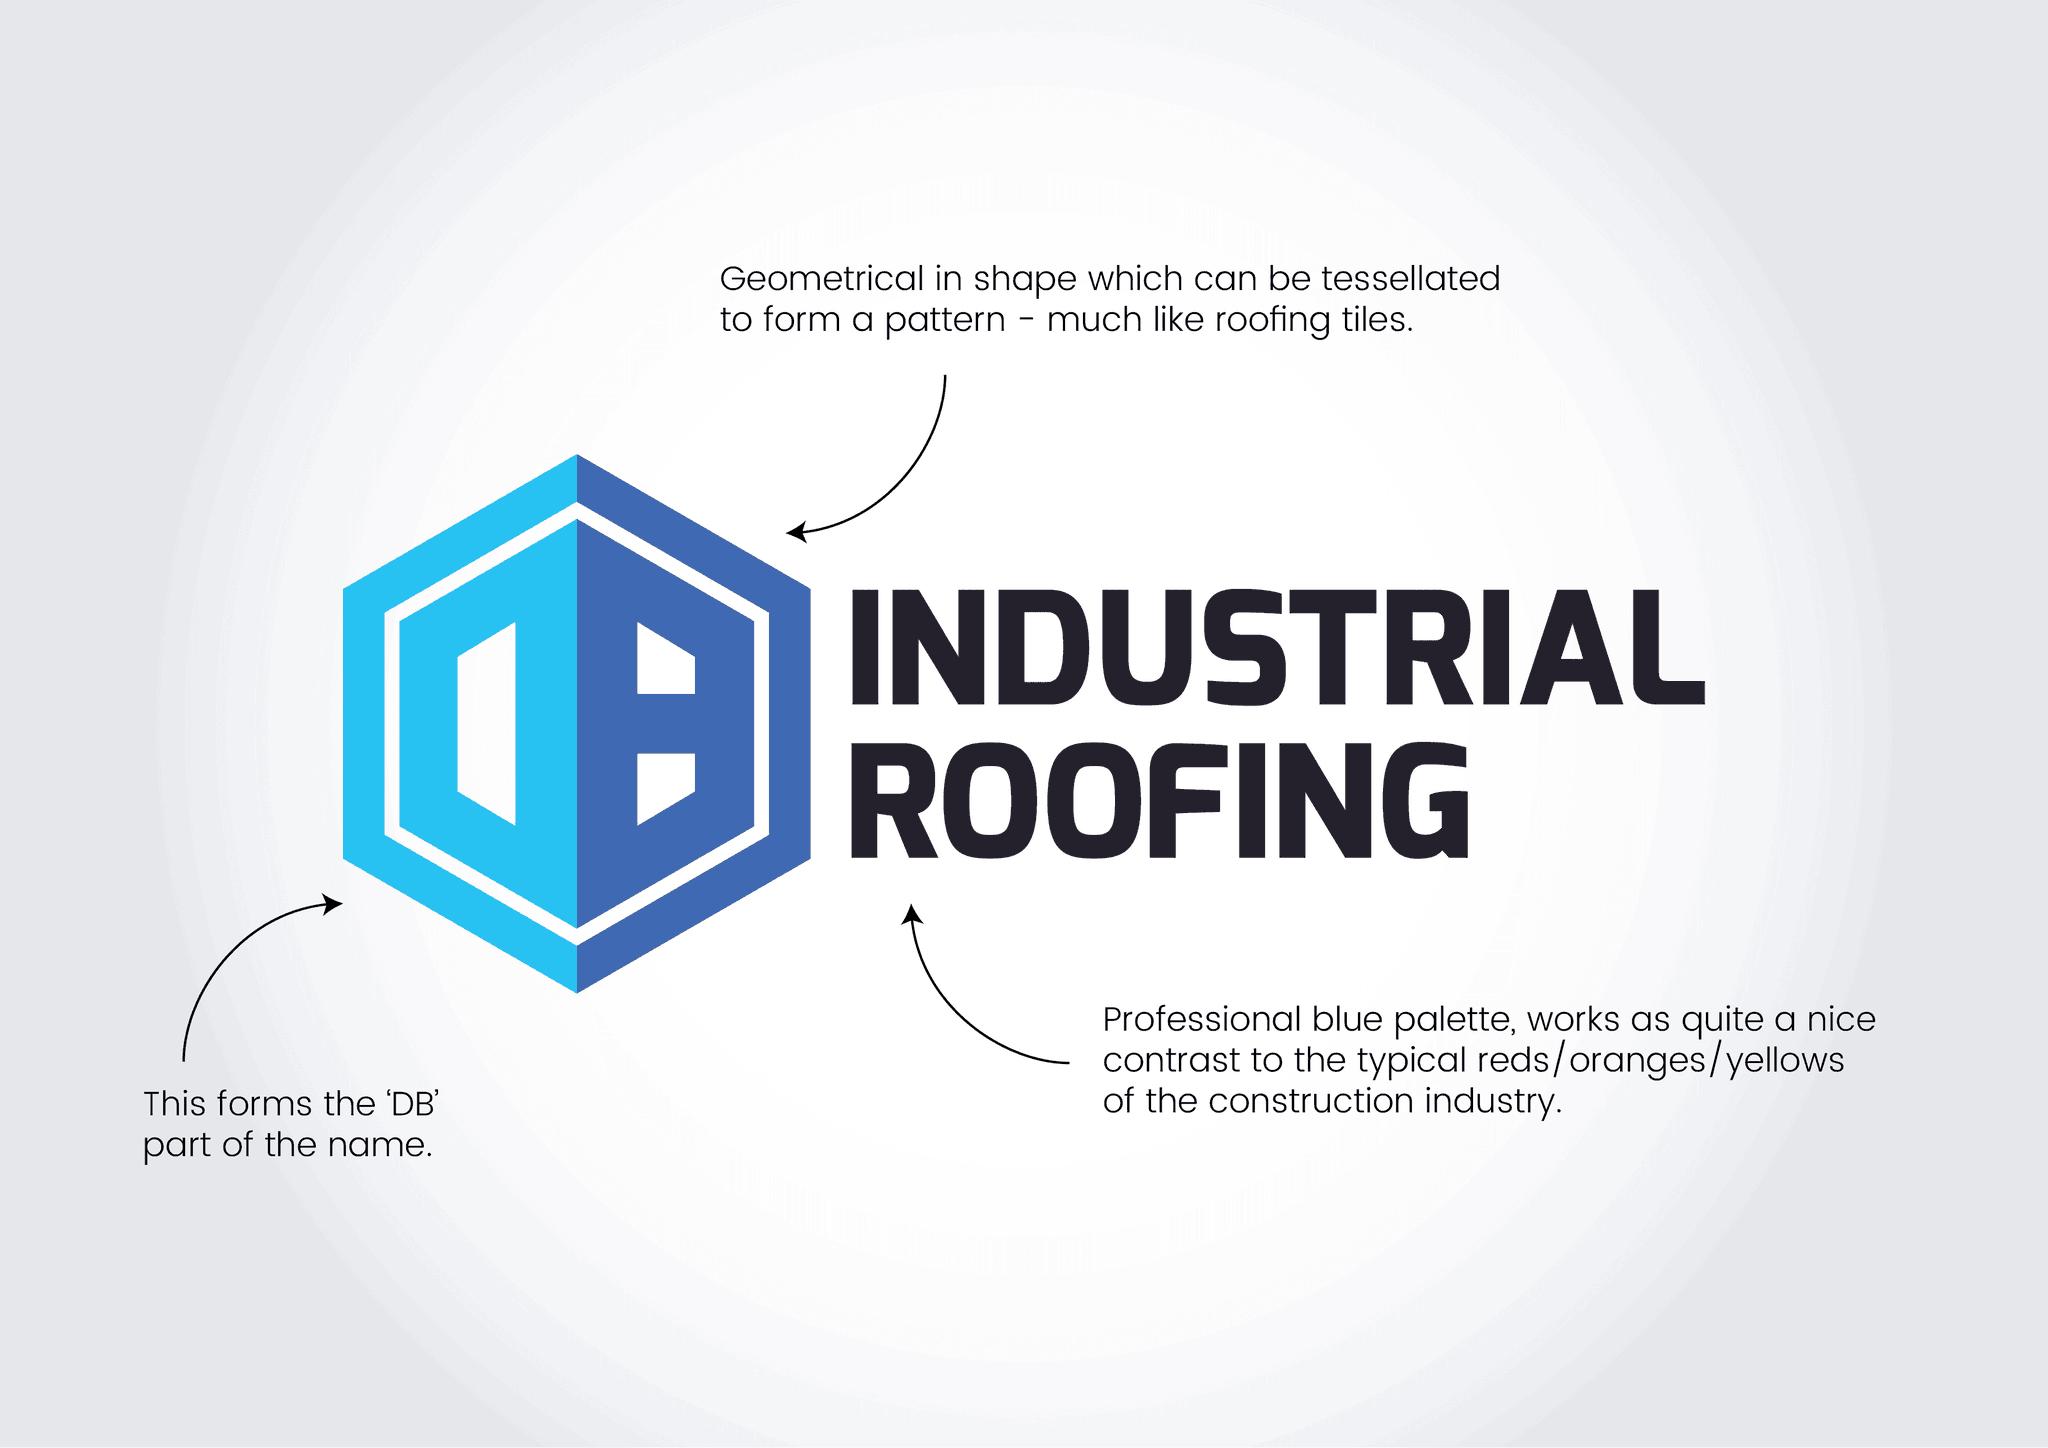 Infiniti Graphics On Twitter Db Industrial Roofing Was Started By Dan Beeton Who S Been In The Steel Erecting And Roofing Business For Over 20 Years We Worked With These Guys To